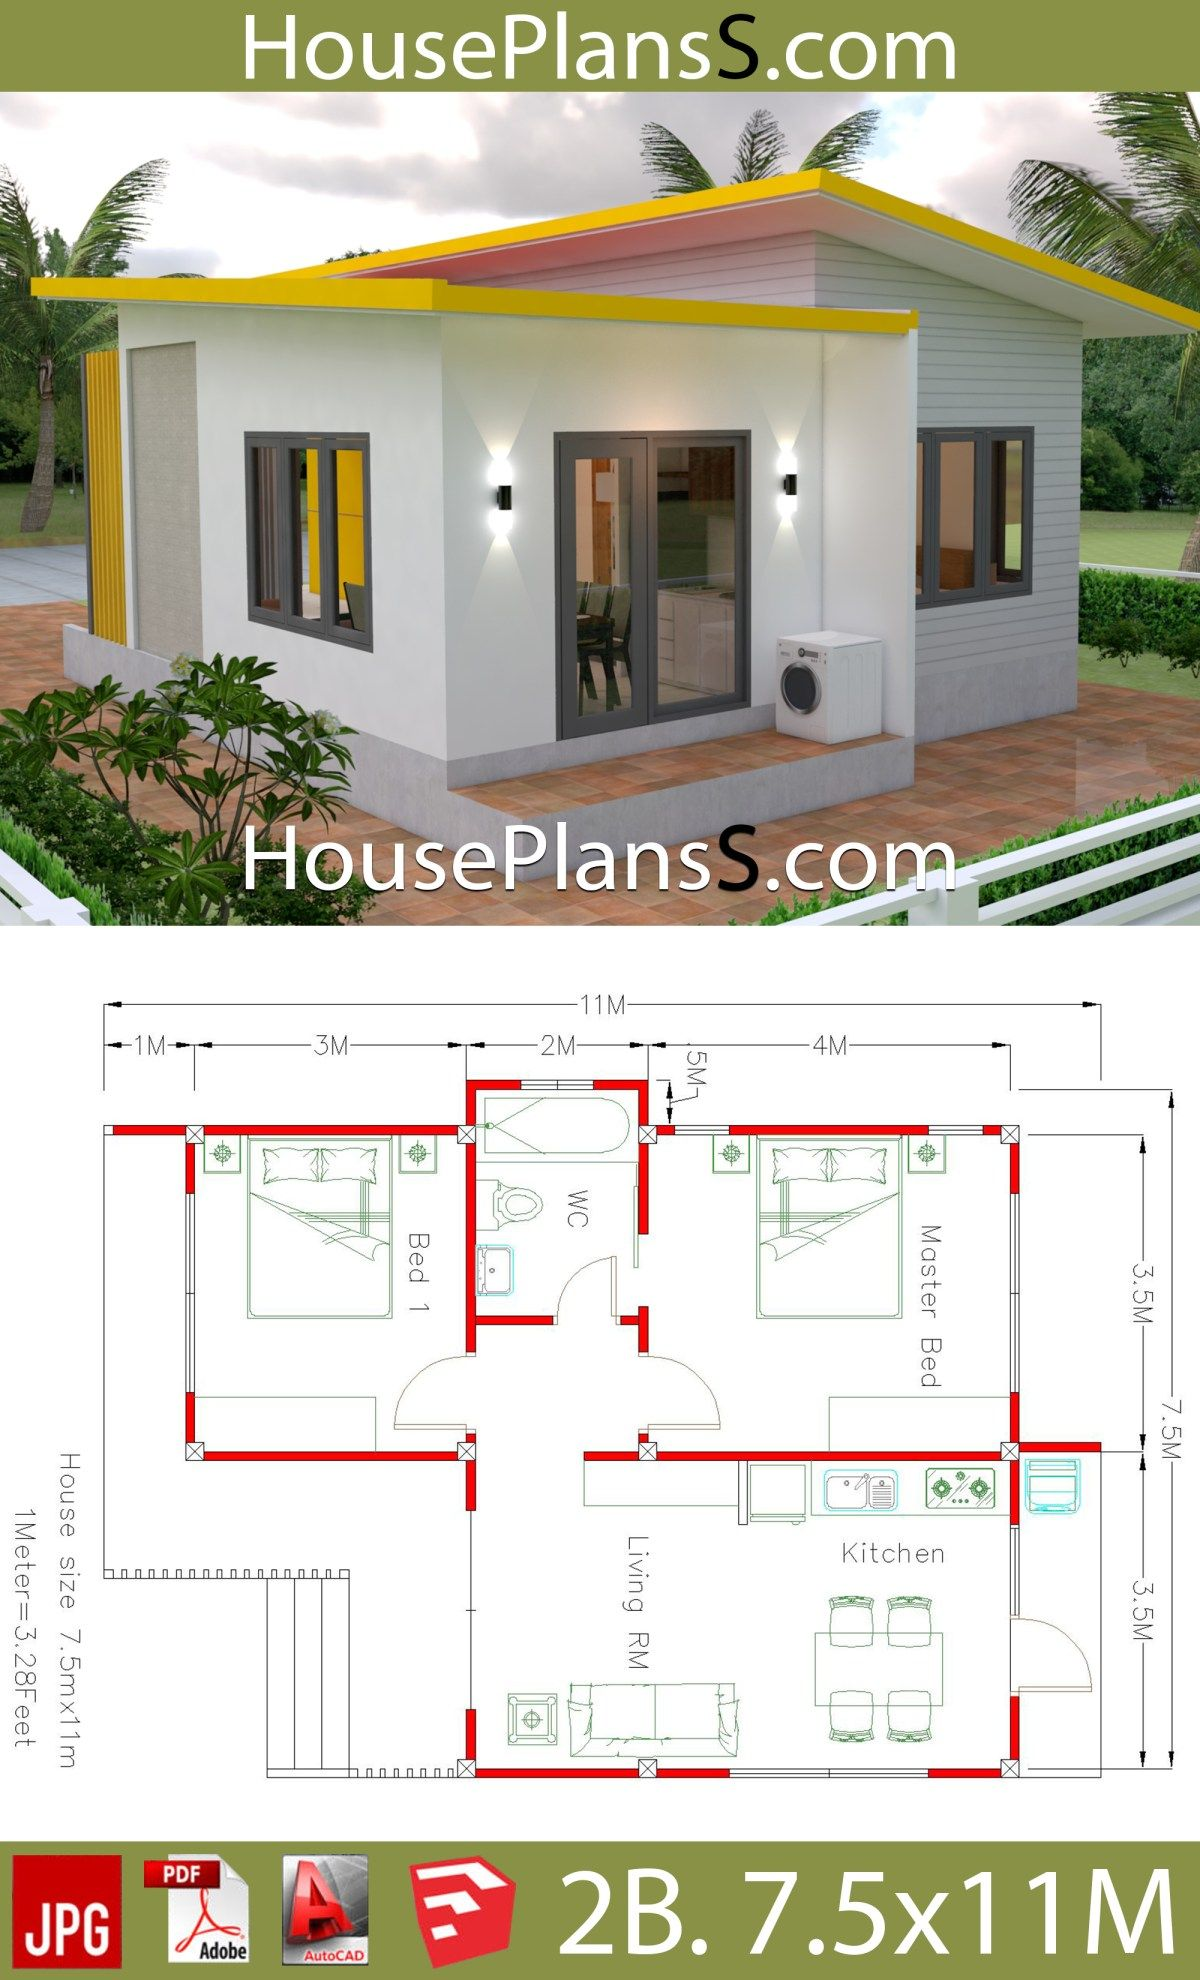 House Plans 7 5x11 With 2 Bedrooms Full Plans House Plans Sam Bungalow House Plans Bungalow House Design Small House Design Plans